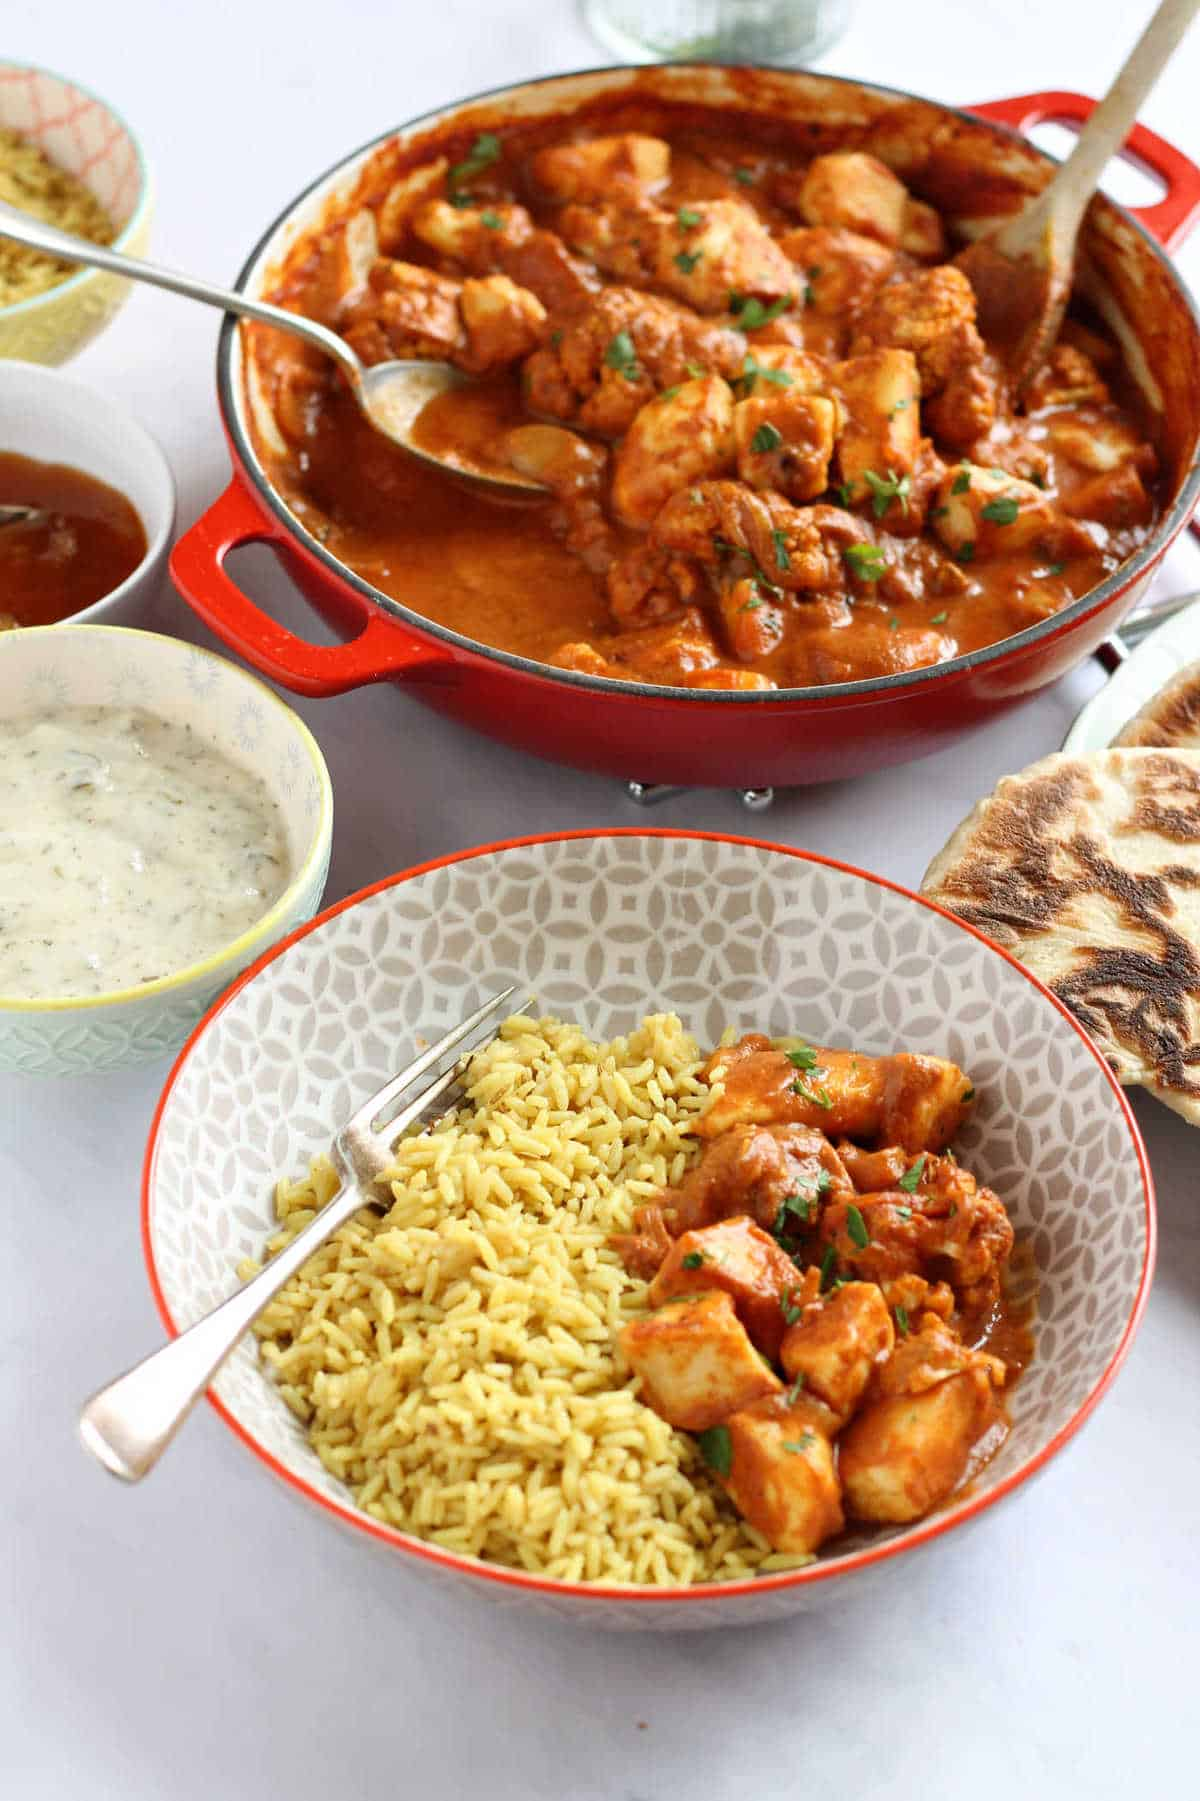 A curry night feast